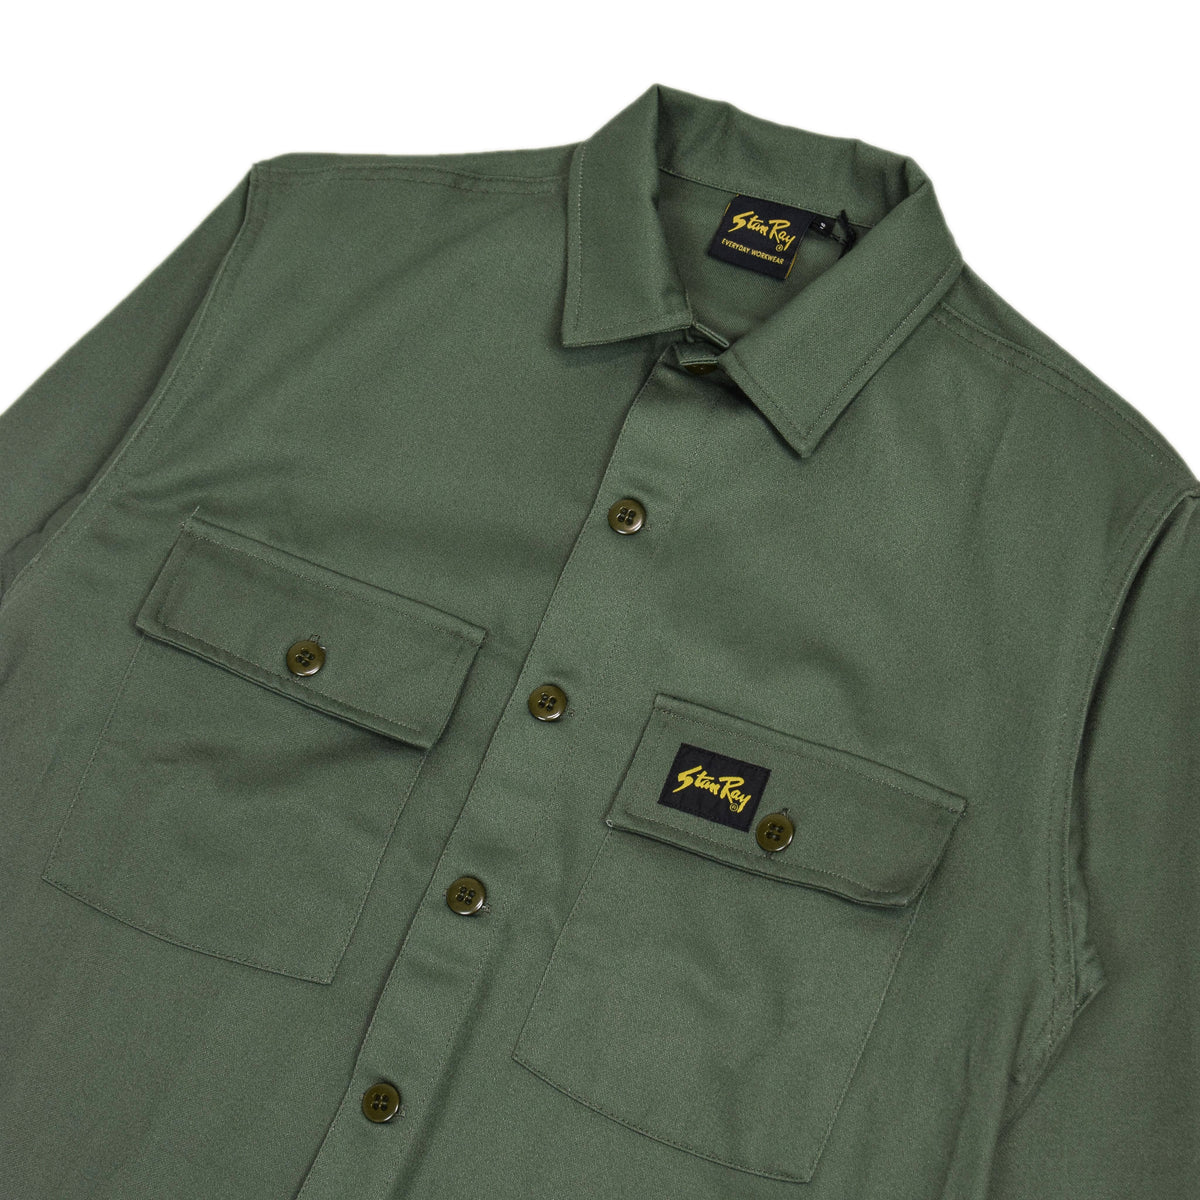 Stan Ray Olive Sateen CPO Overshirt Made In Portugal chest